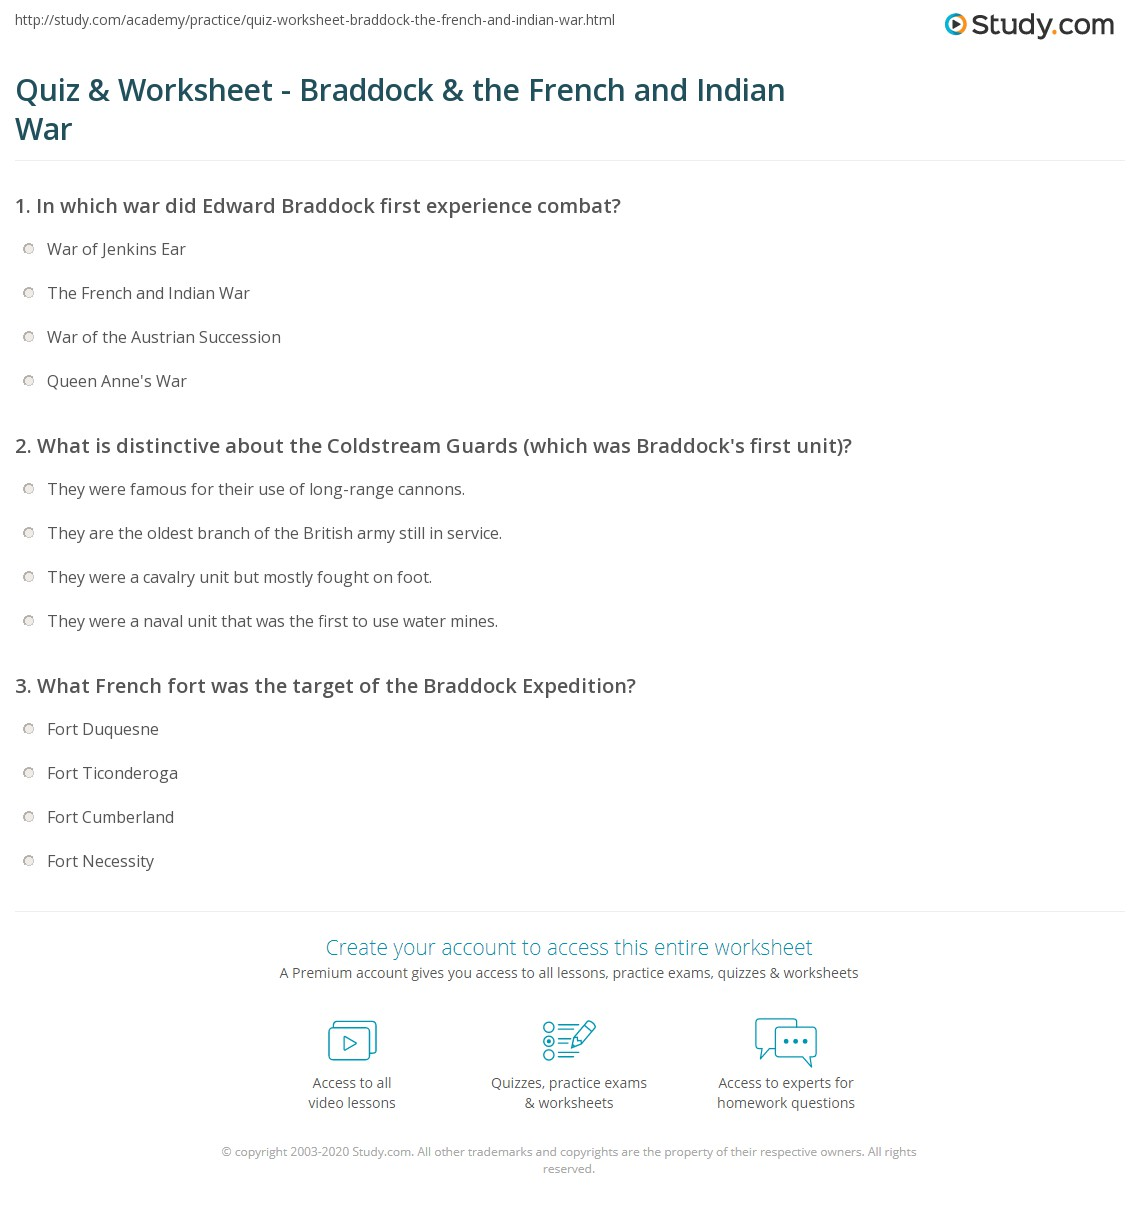 Quiz & Worksheet - Braddock & the French and Indian War   Study.com